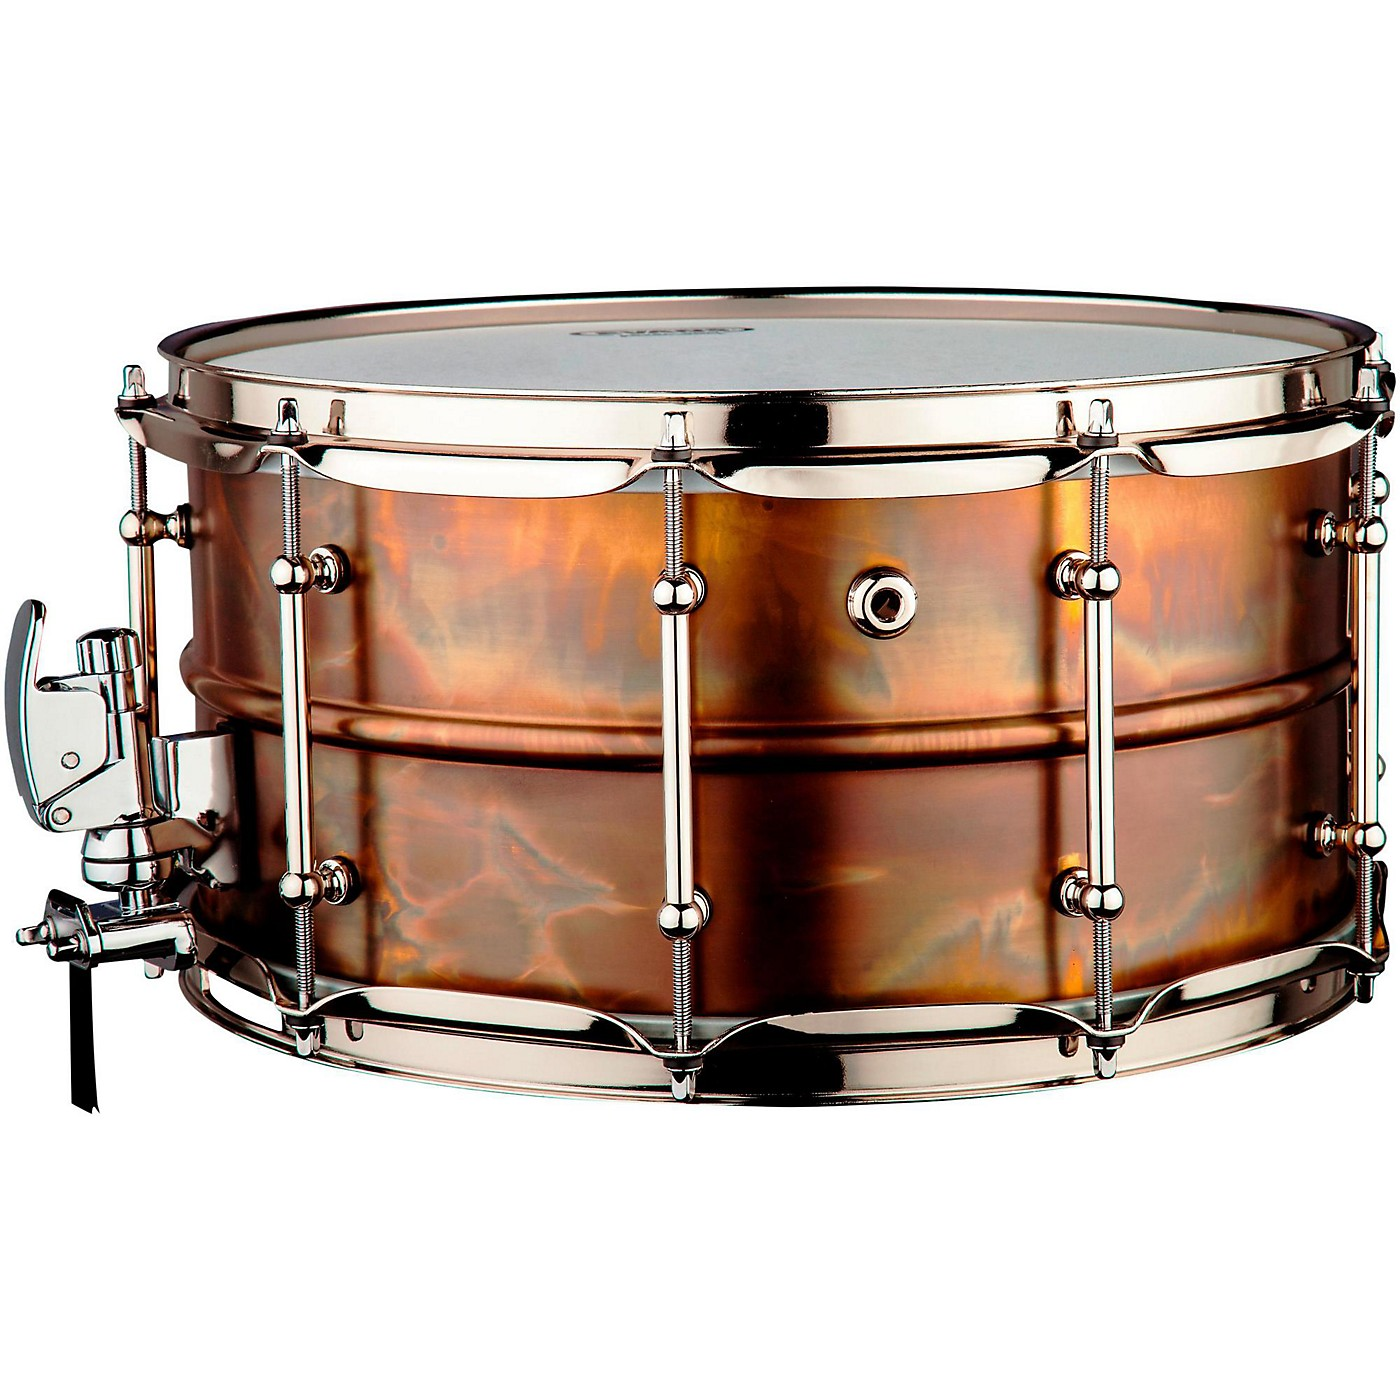 ddrum Modern Tone Weathered Patina Snare Drum thumbnail